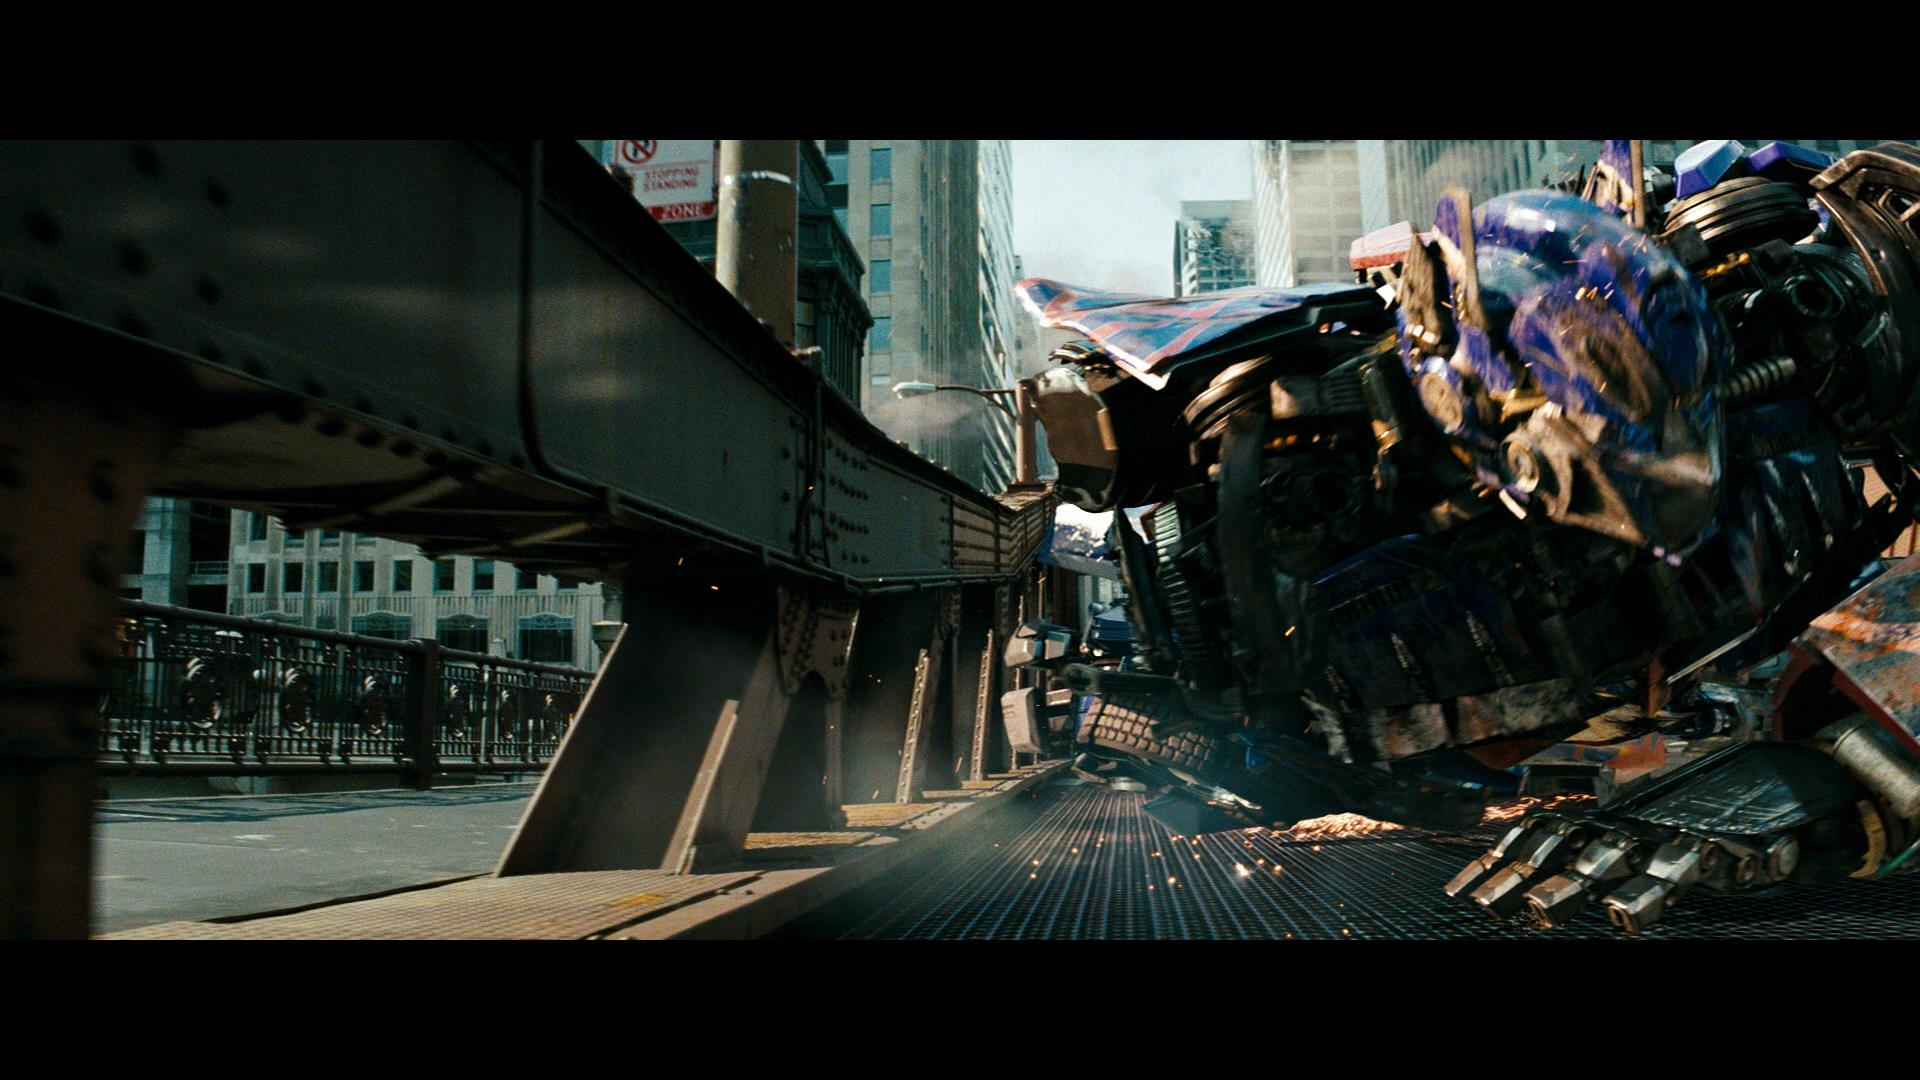 image transformers 3 dark of the moon prequel video game